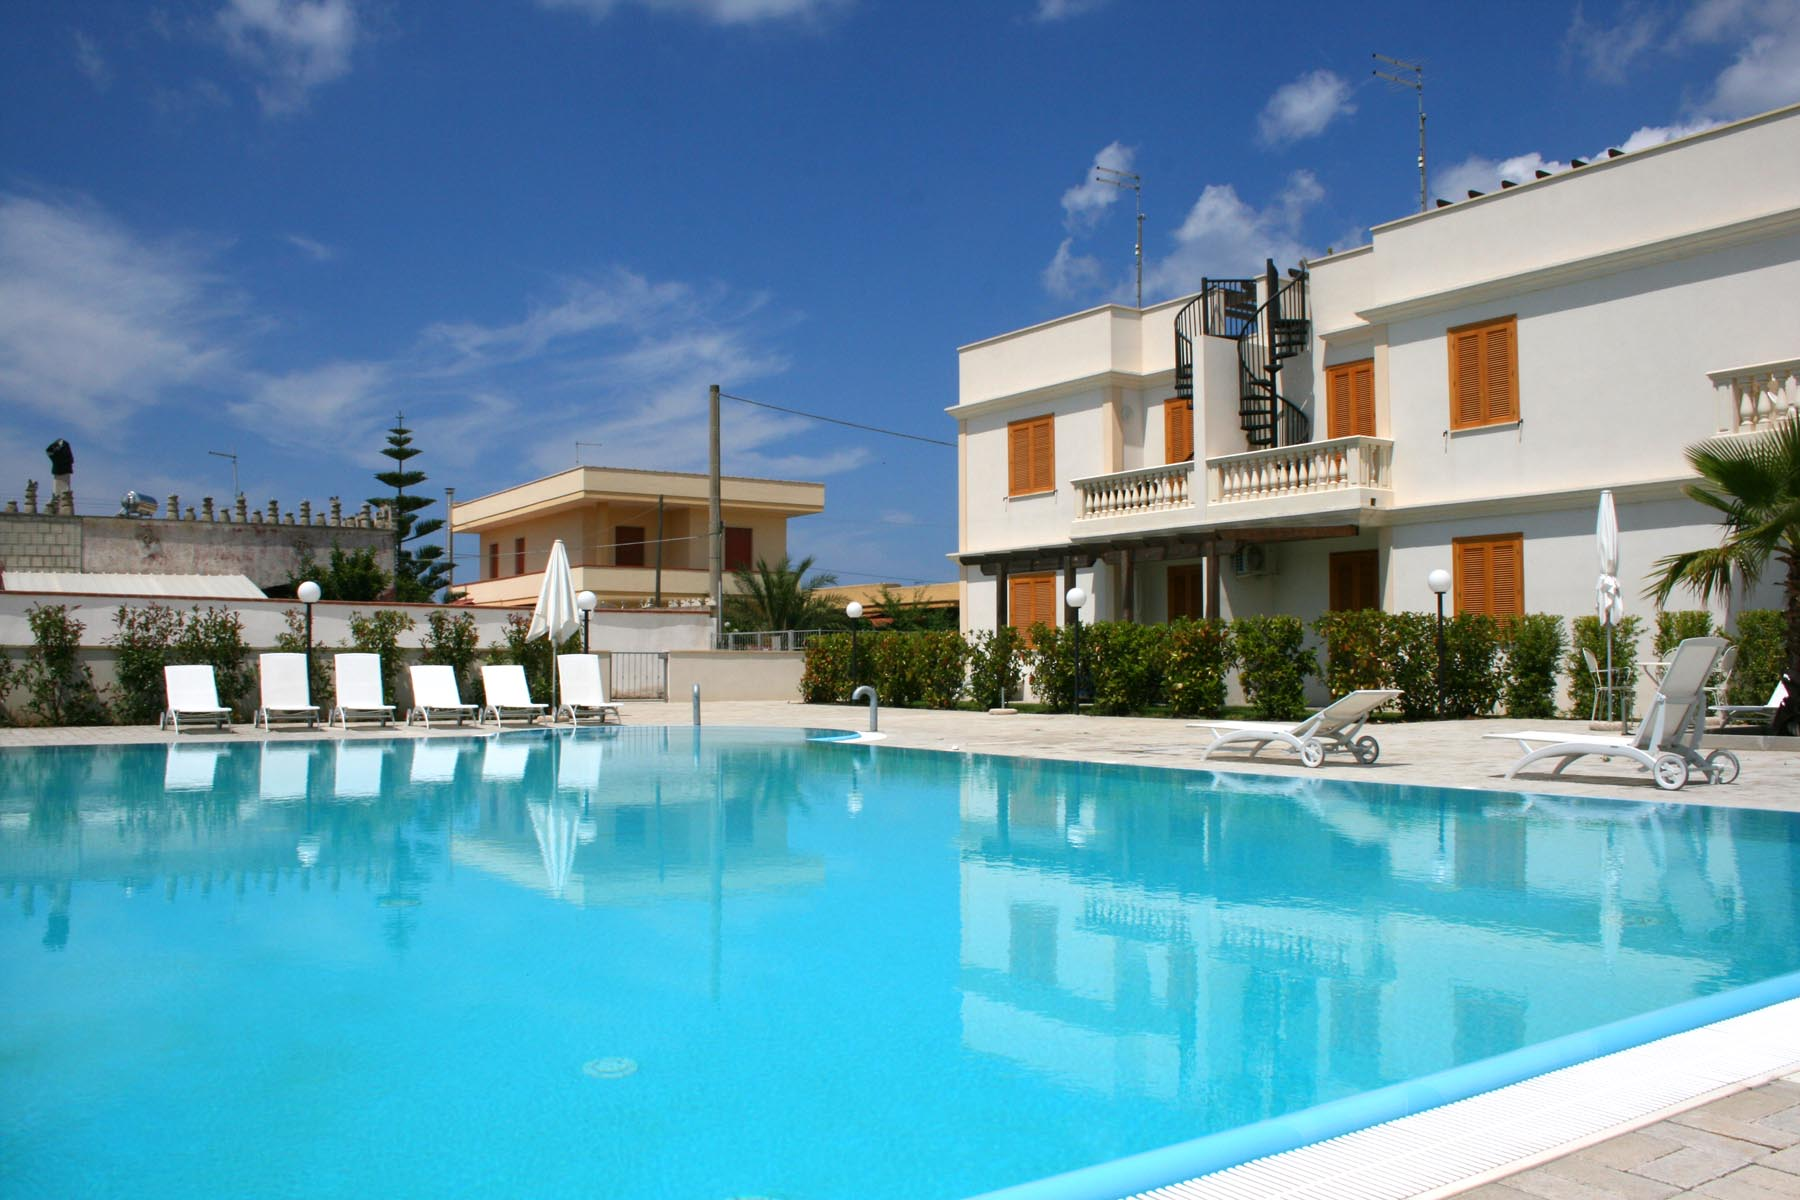 Holiday homes italyflavours for Holiday houses with swimming pools